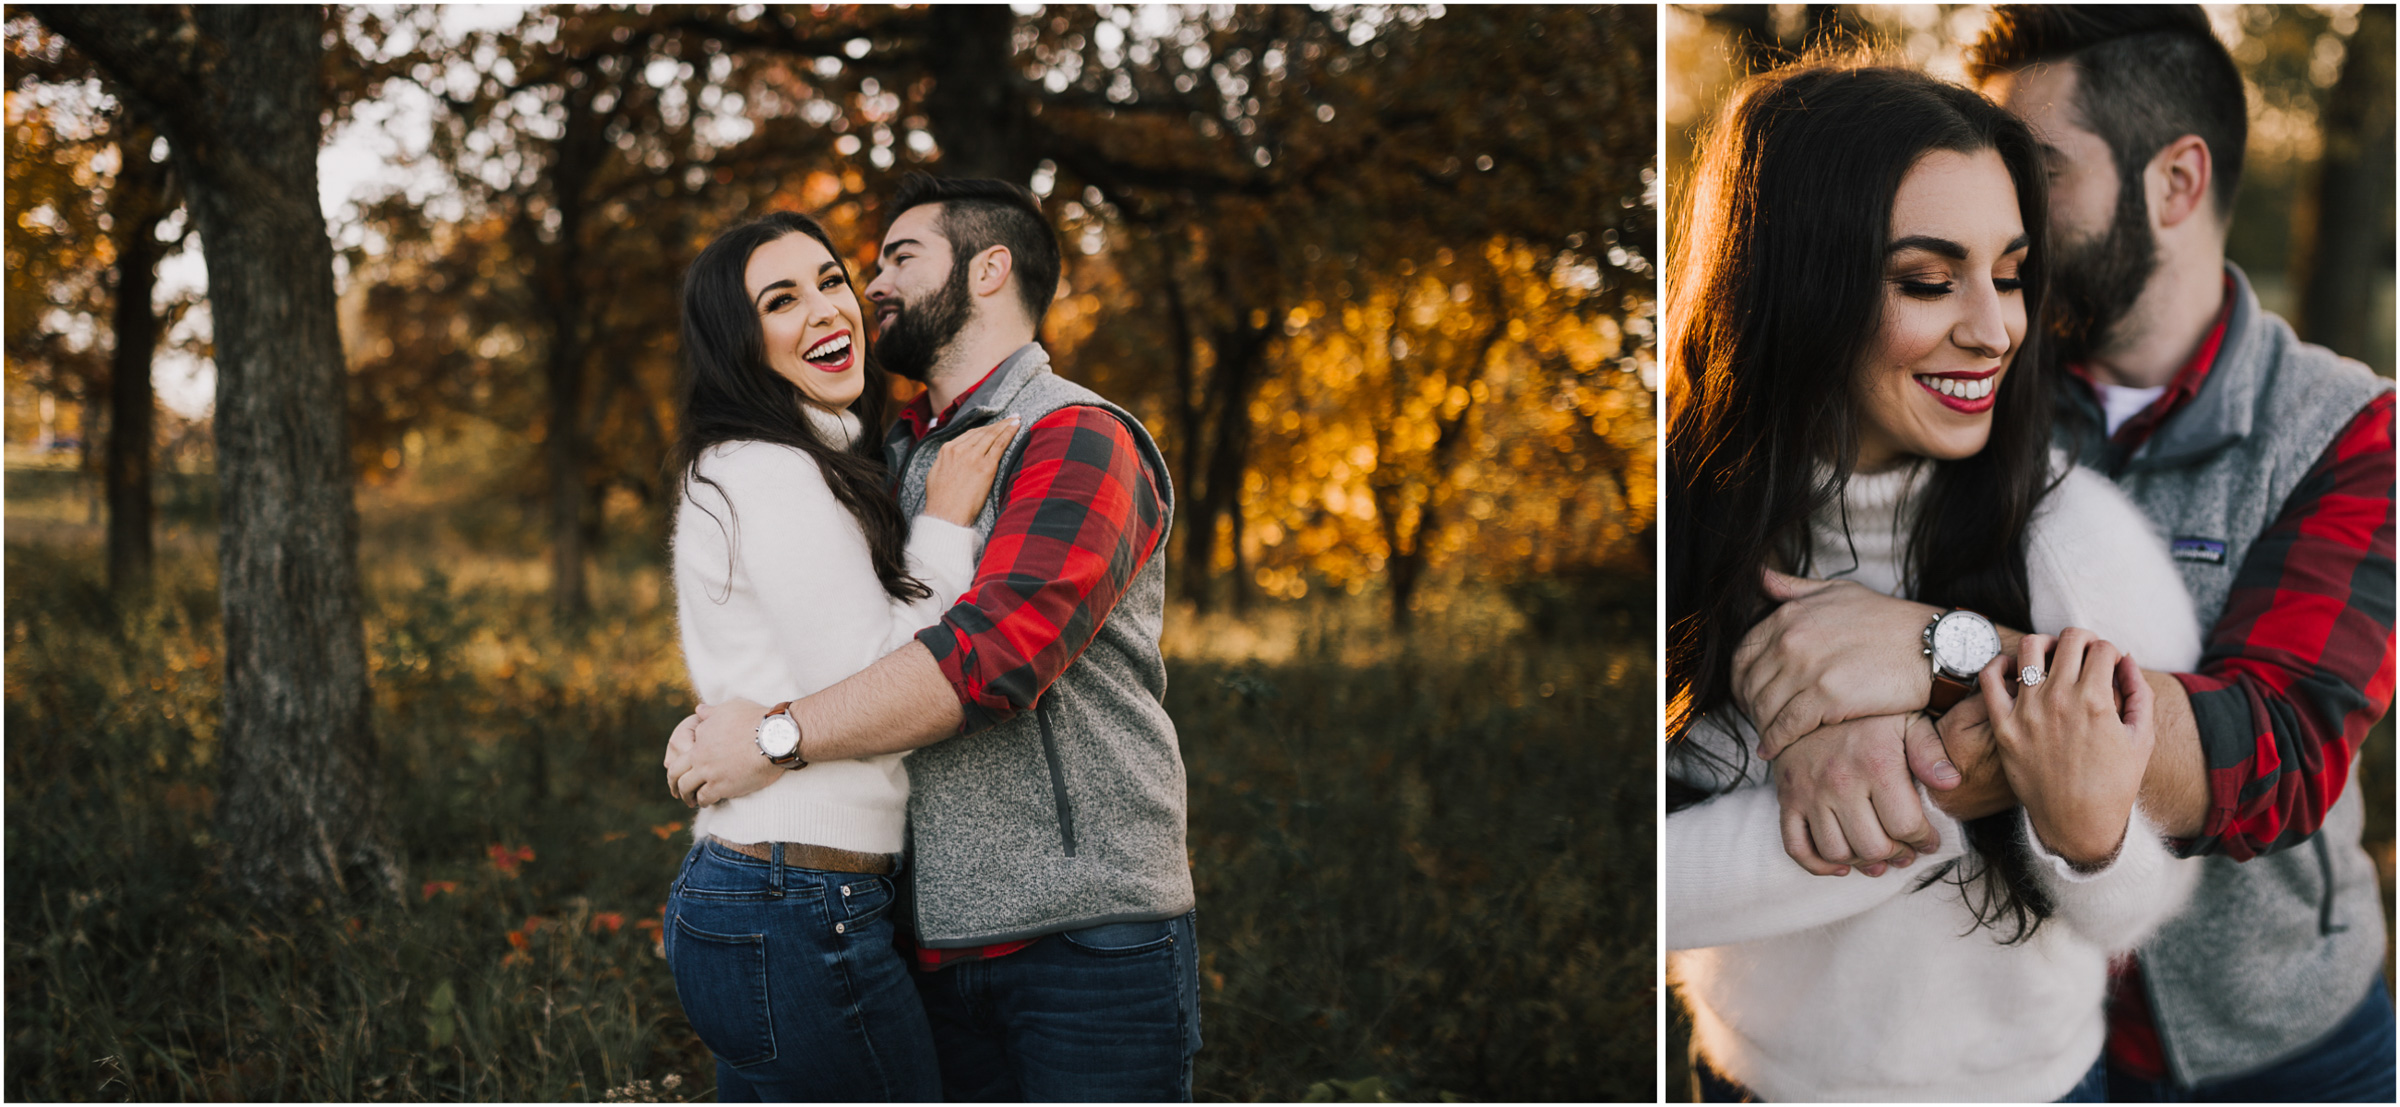 alyssa barletter photography shawnee mission park fall engagement photographer a girl her life blogger sunset photos-9.jpg